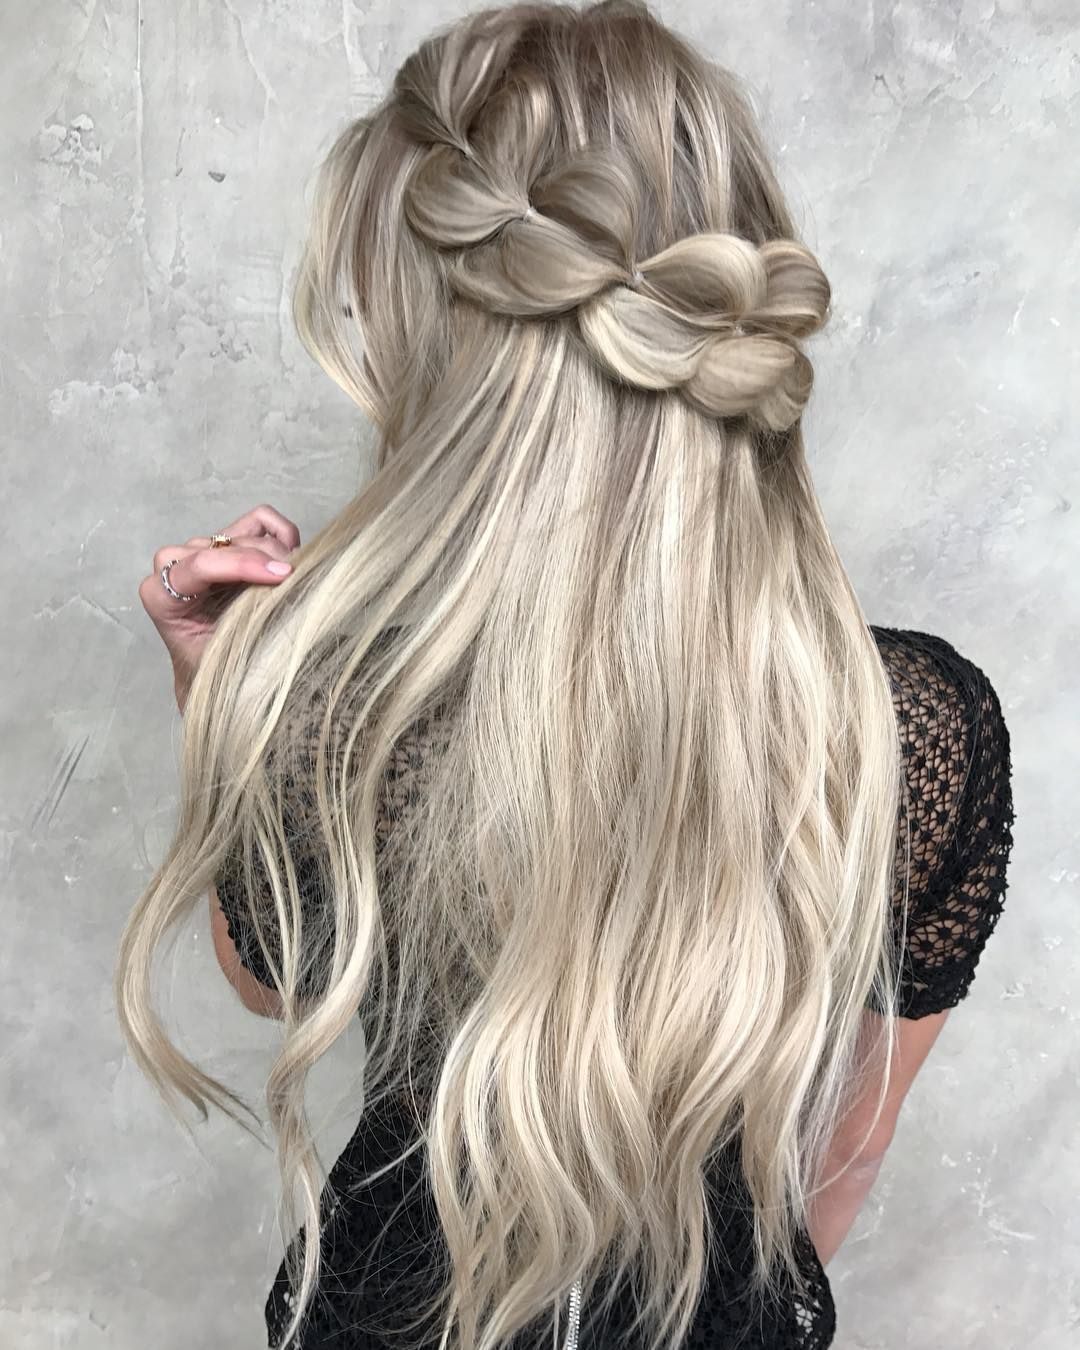 49 Boho Braid Hairstyles to Try – braid hairstyle ,half up half down hairstyle #braids #hairstyles #bohohairstyles